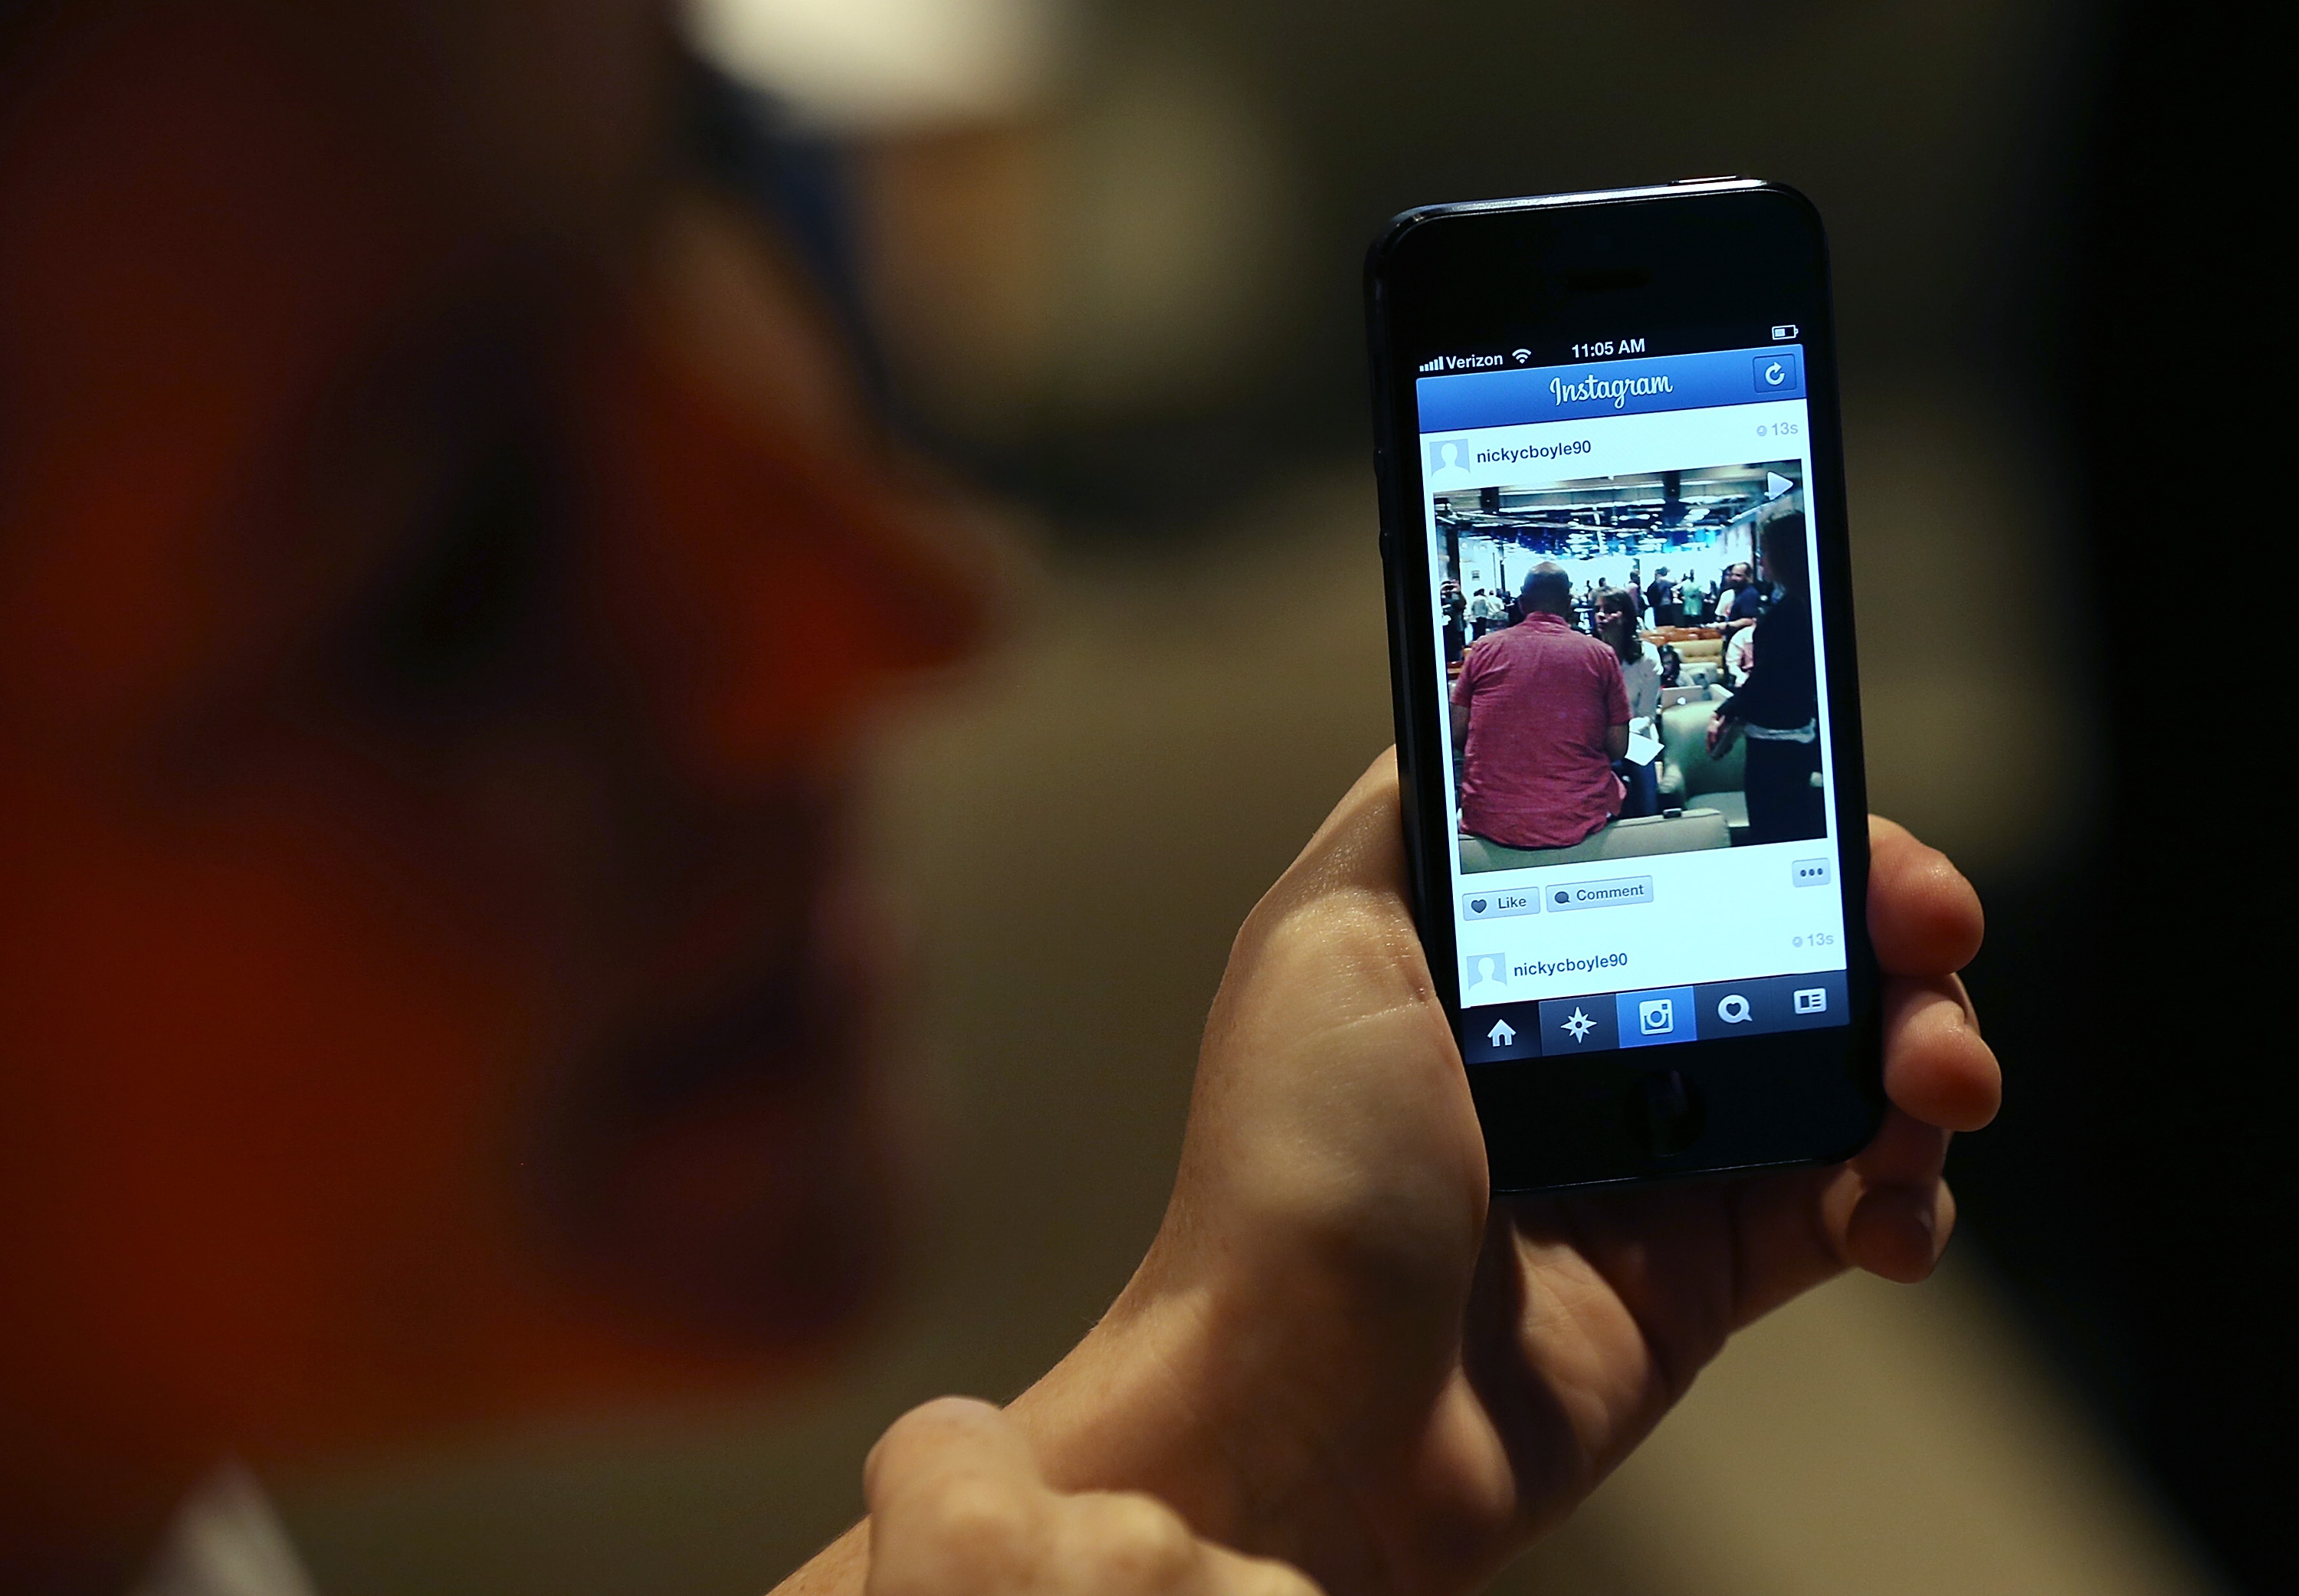 A Facebook employee demonstrates the new Instagram video option during a press event at Facebook headquarters on June 20, 2013 in Menlo Park, California.